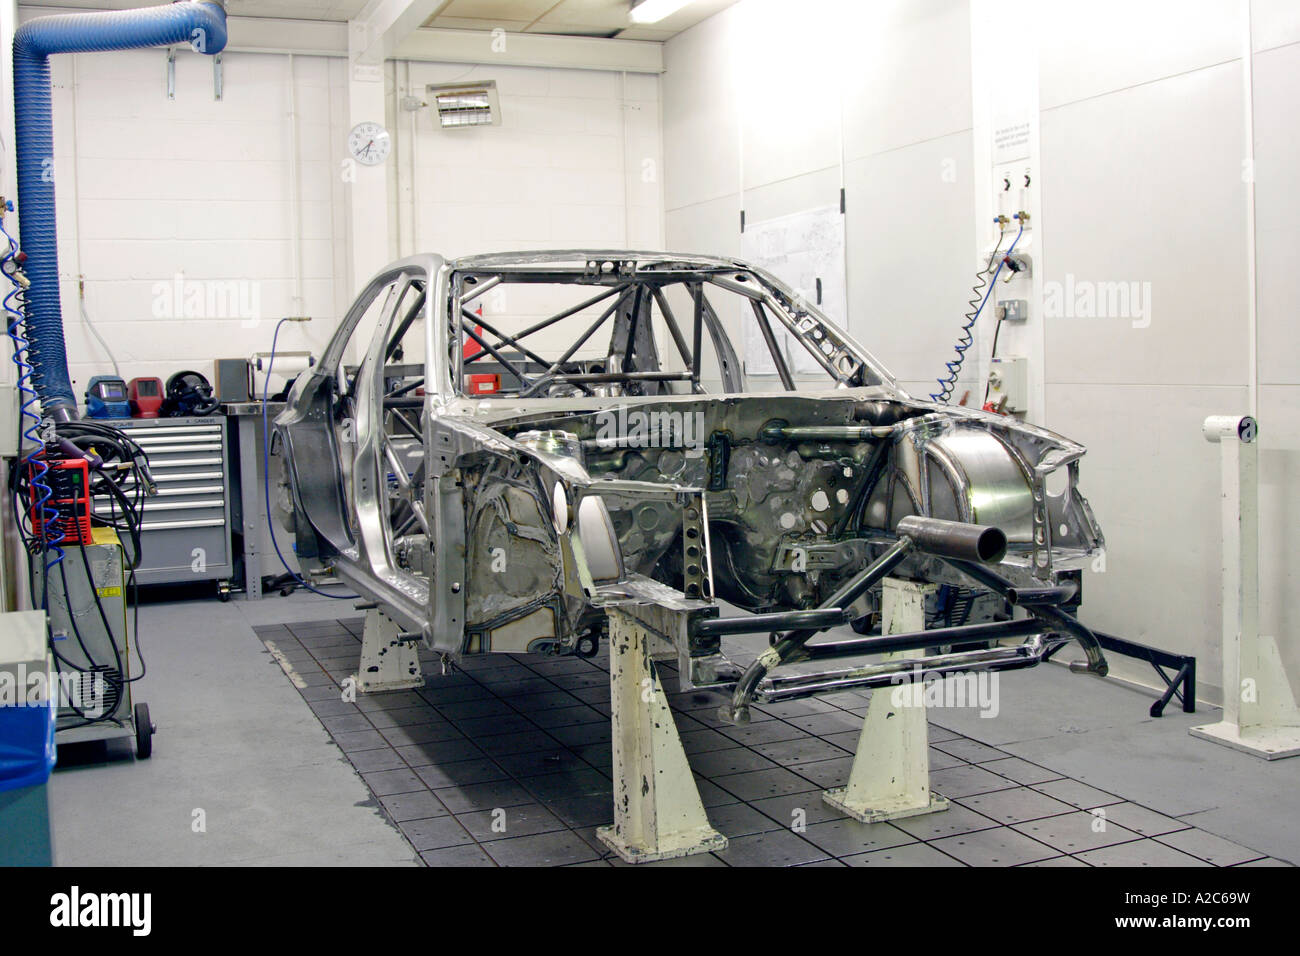 Subaru Impreza Group N Rally Car Being Prepared At